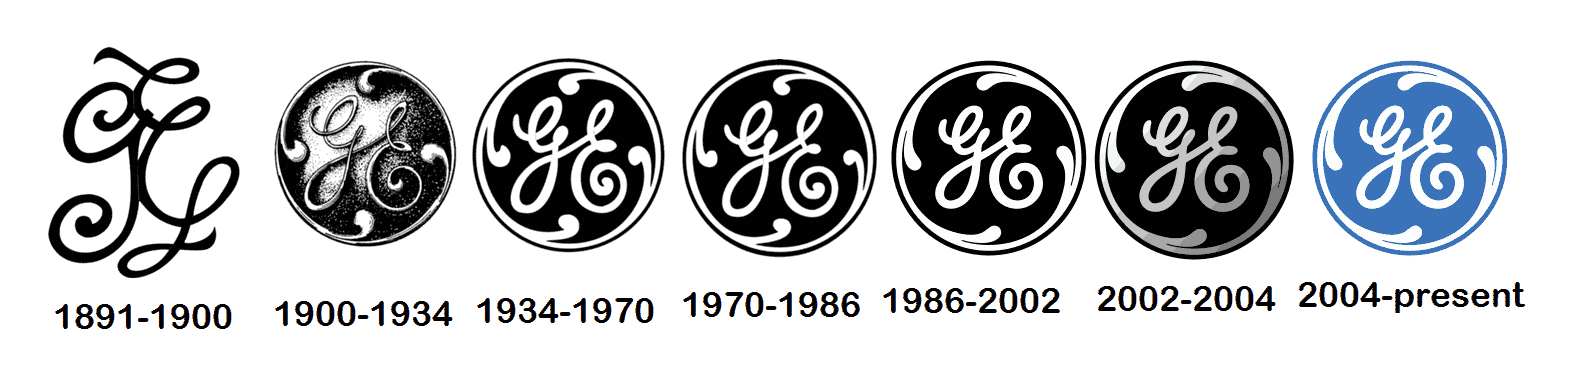 GE-Logo-Evolution